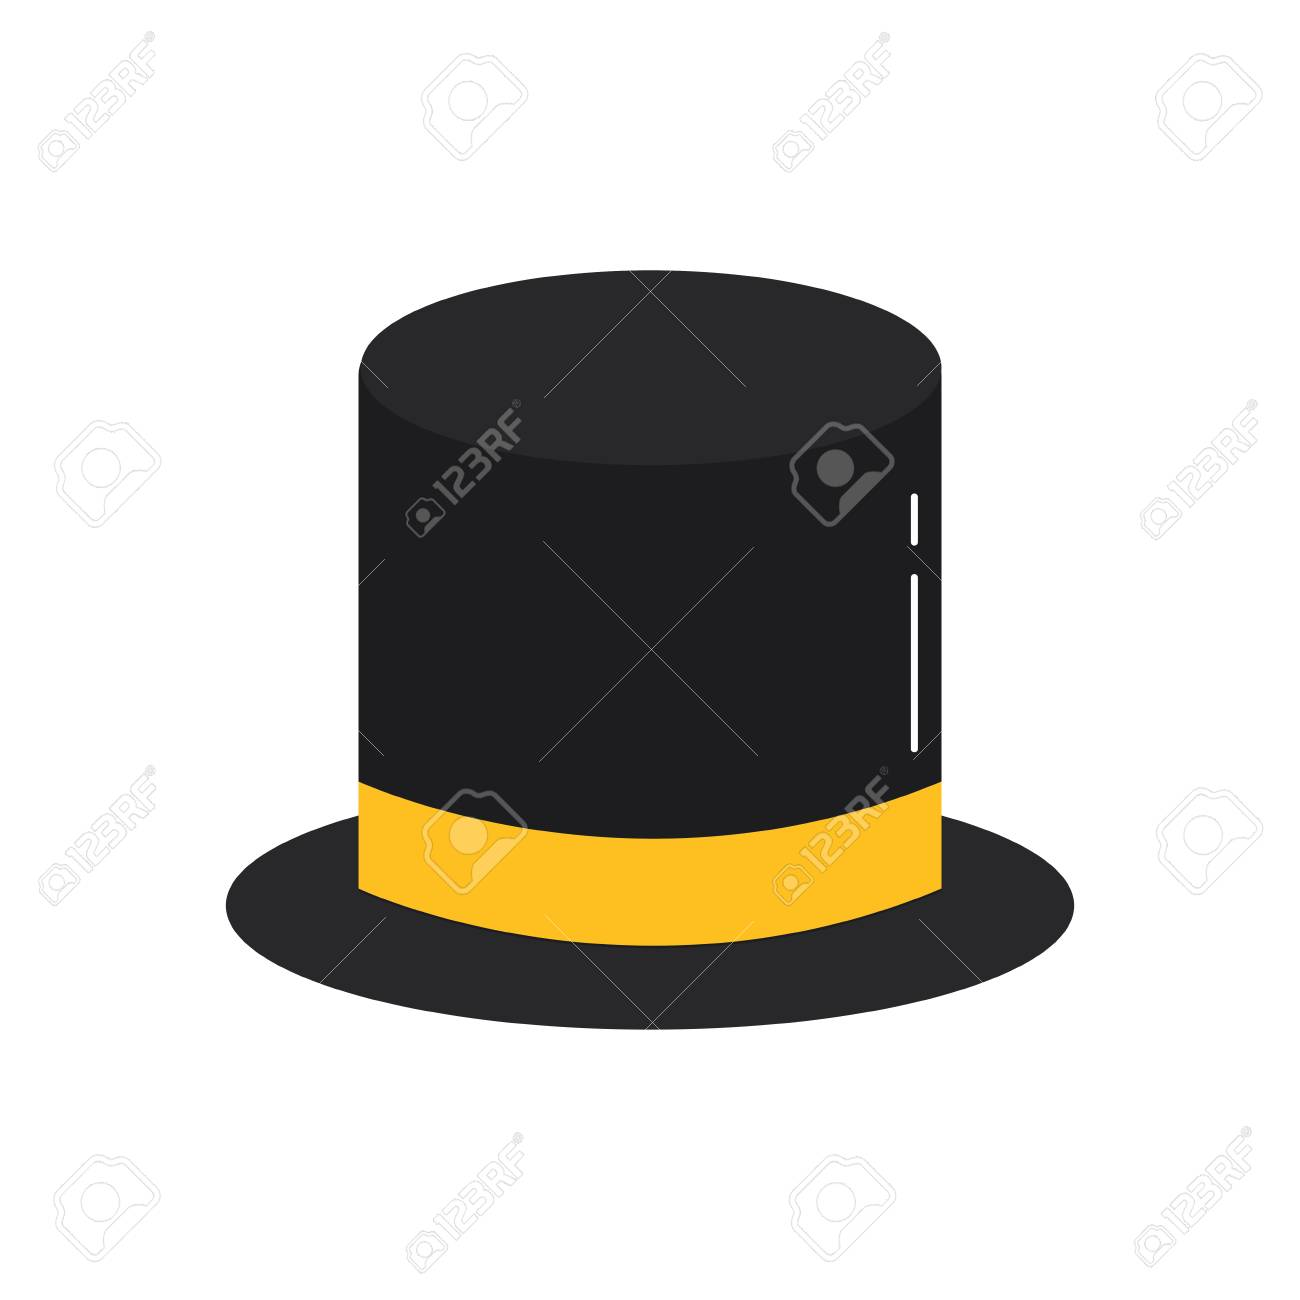 921fd79442a21 top hat accessory elegance fashion vector illustration Stock Vector -  91211145